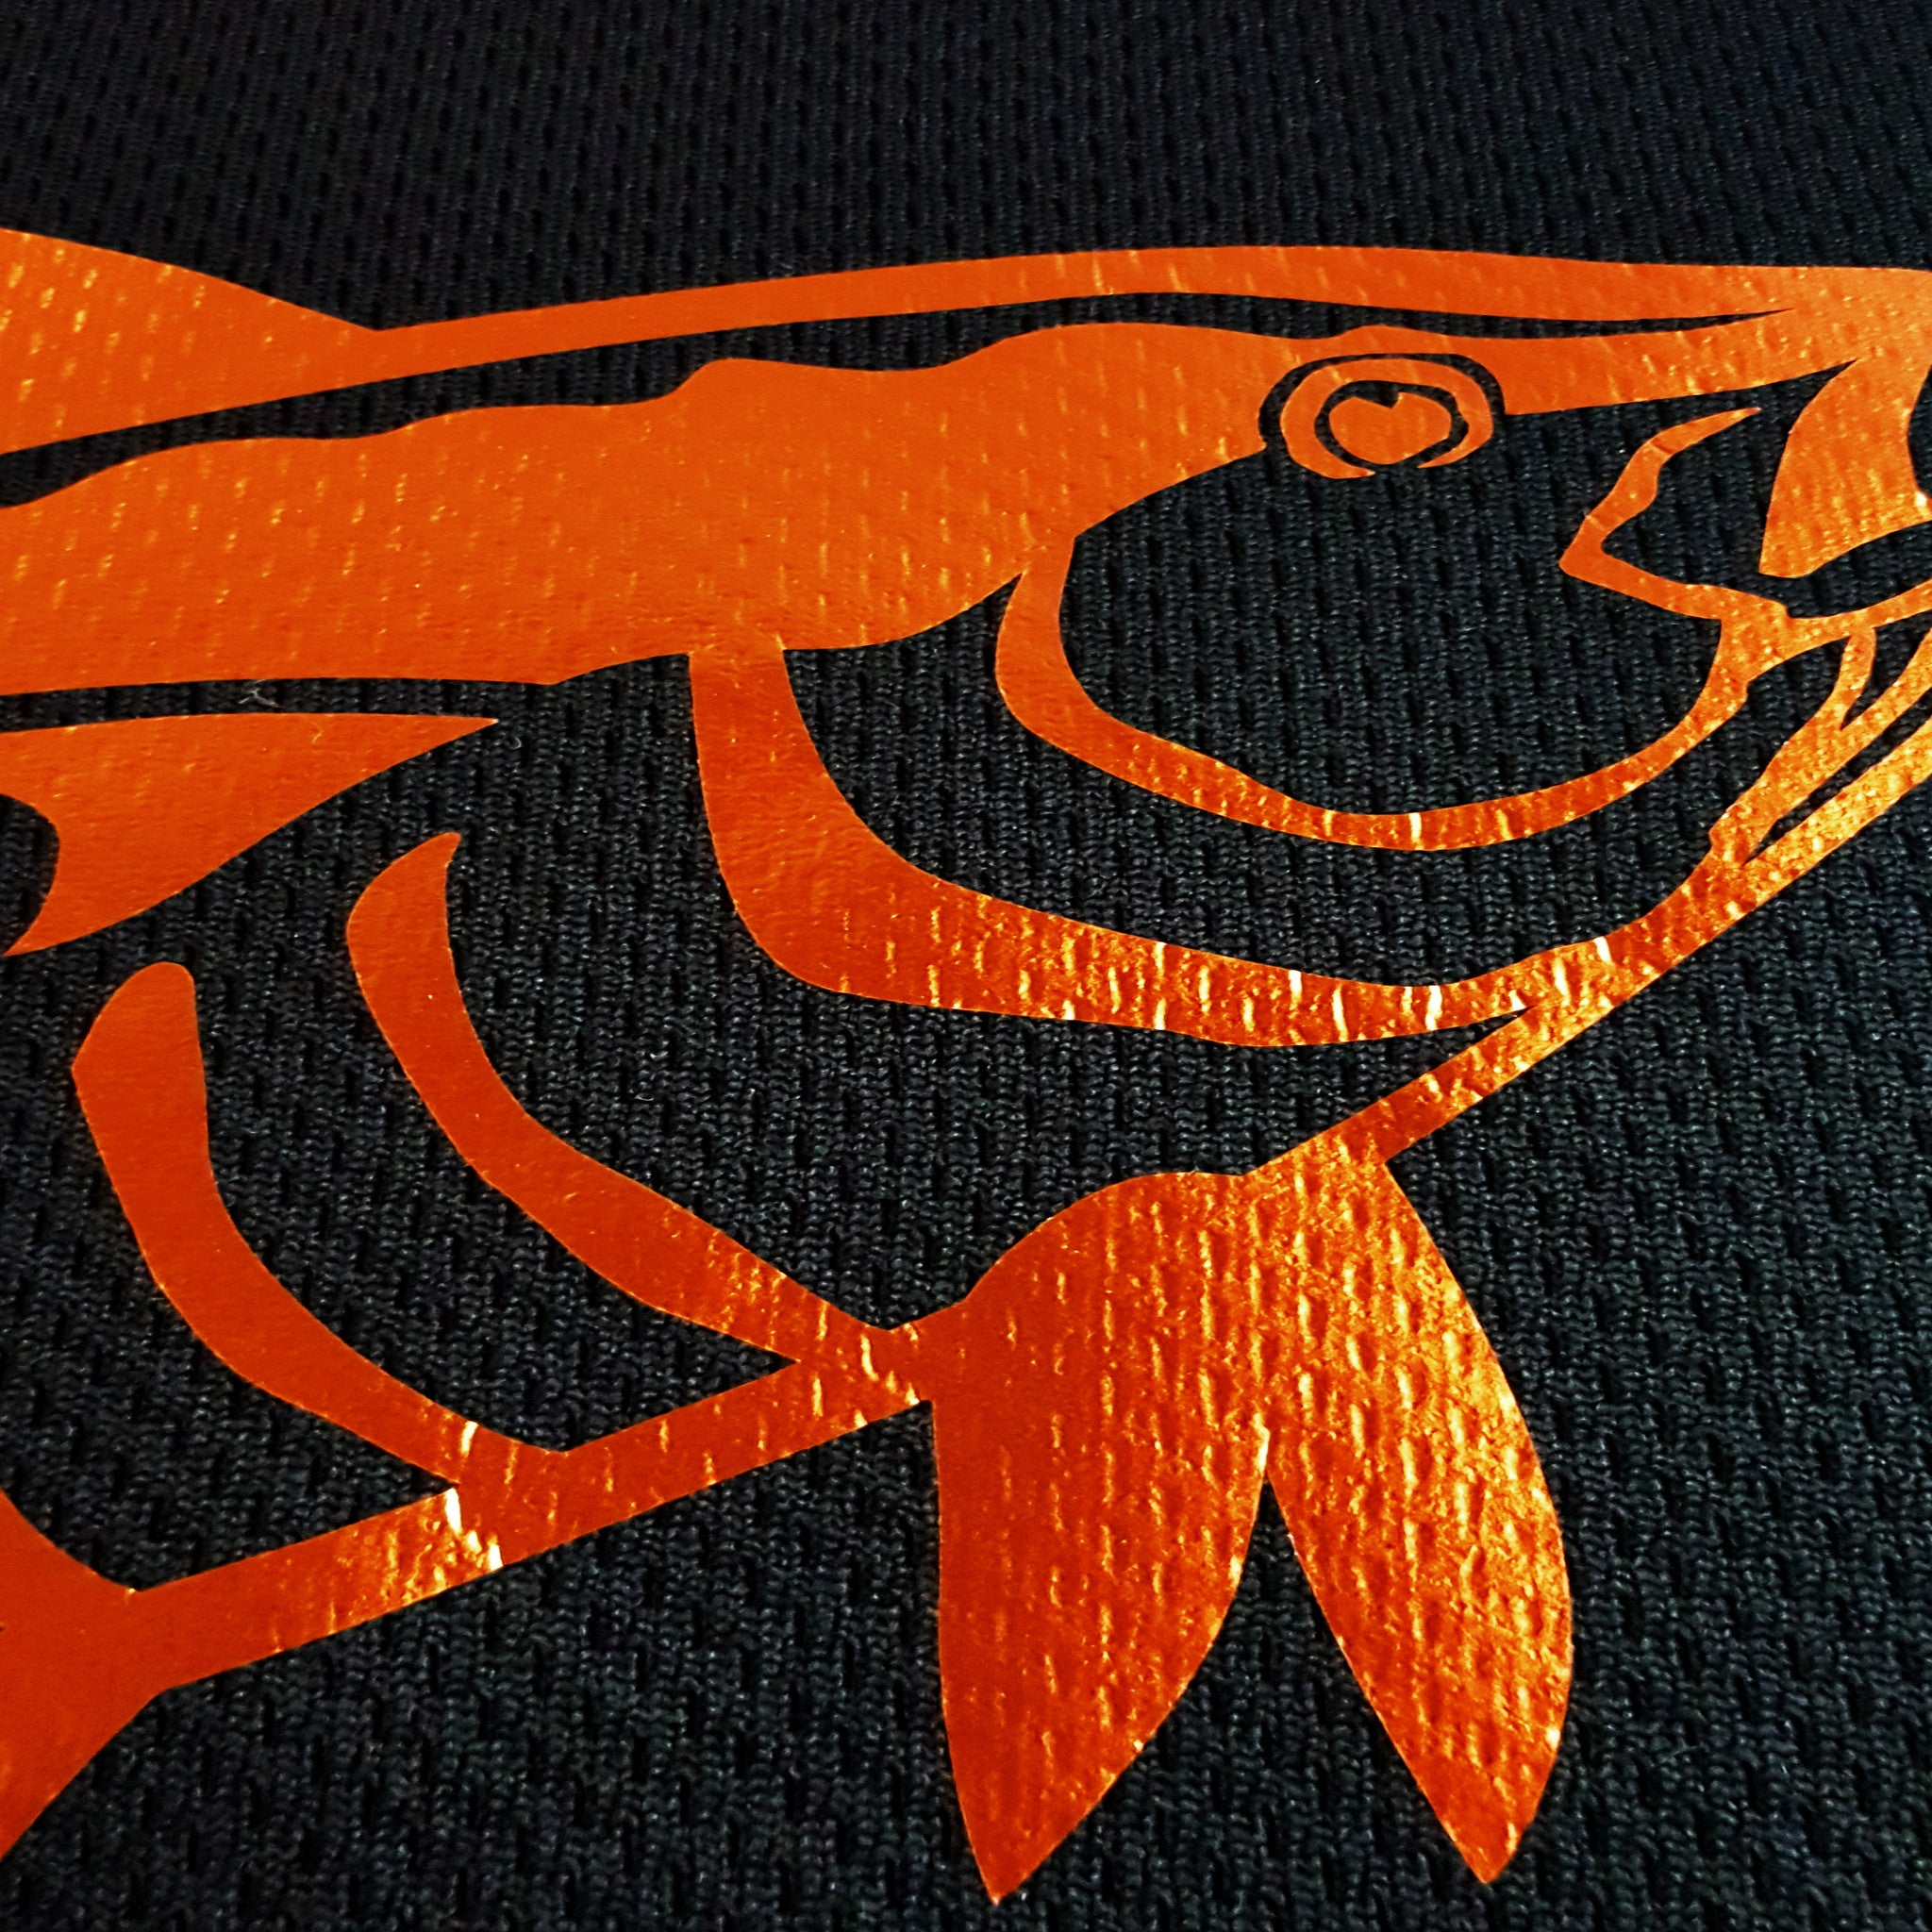 SportyFish Black Series black Long-sleeves t-shirt: Yellowfin Tuna(Japanese words) close-up view